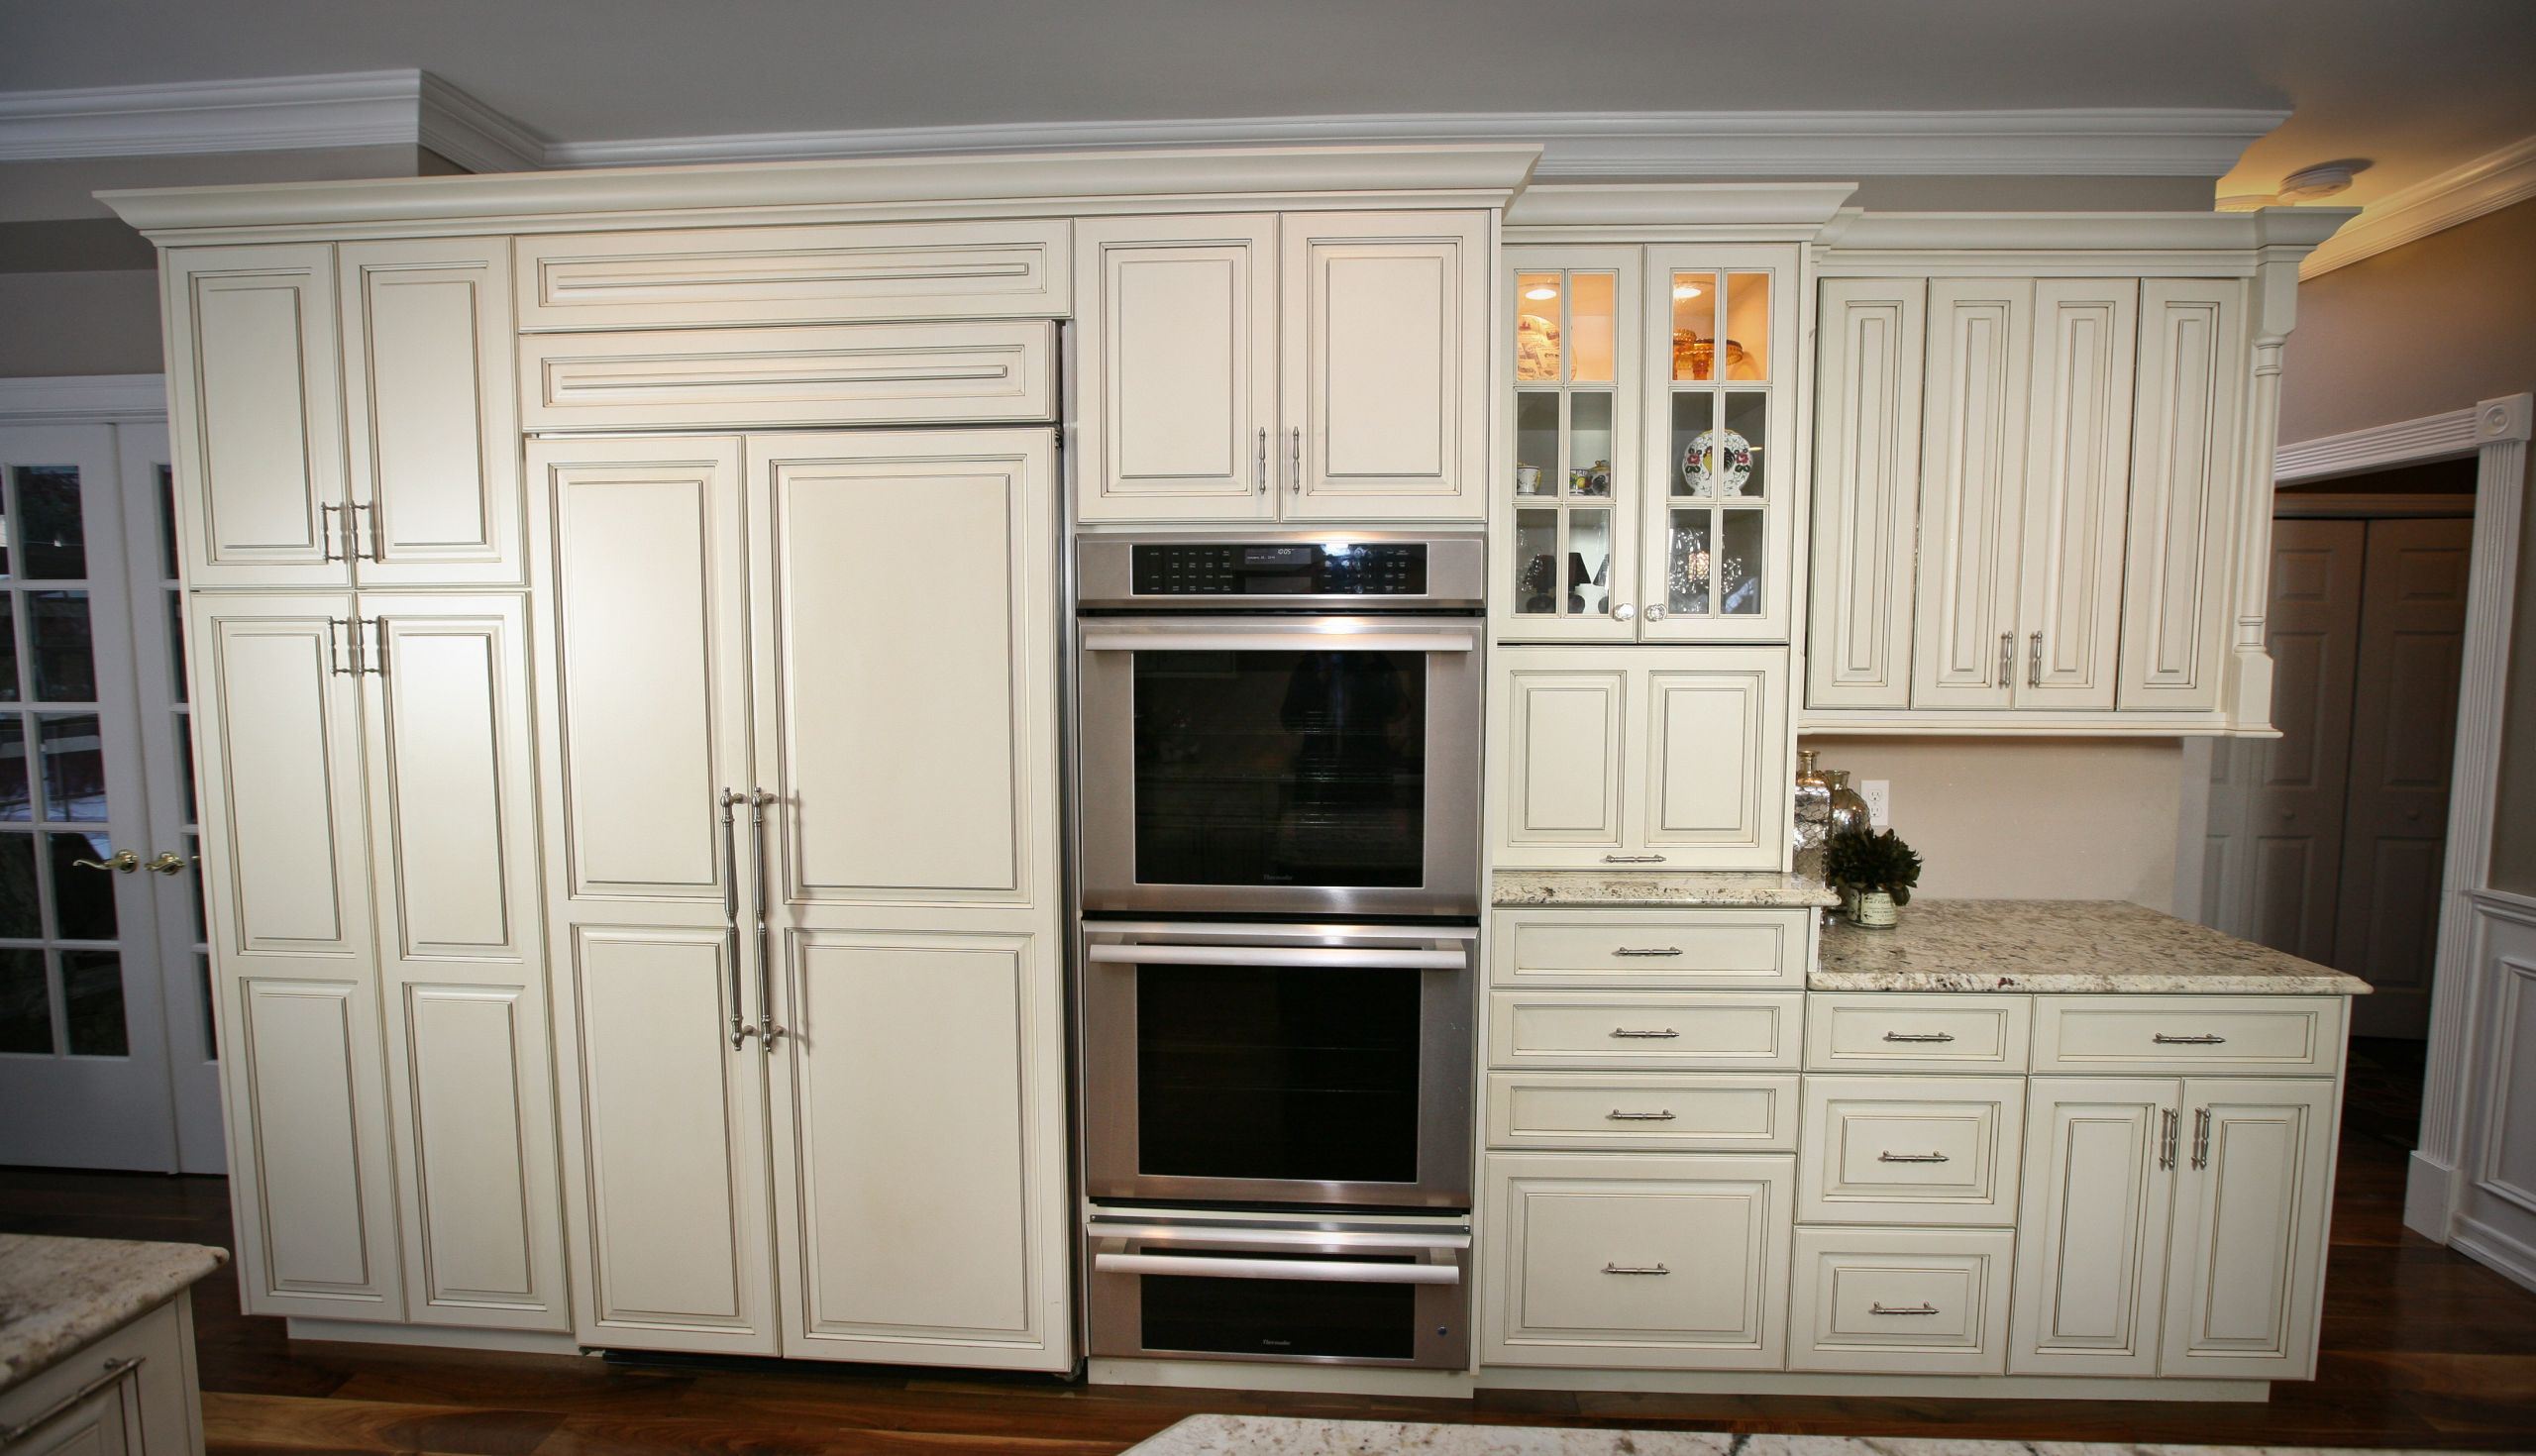 Wall Cabinet Kitchen  Perfect Balance Kitchen Wall New Jersey by Design Line